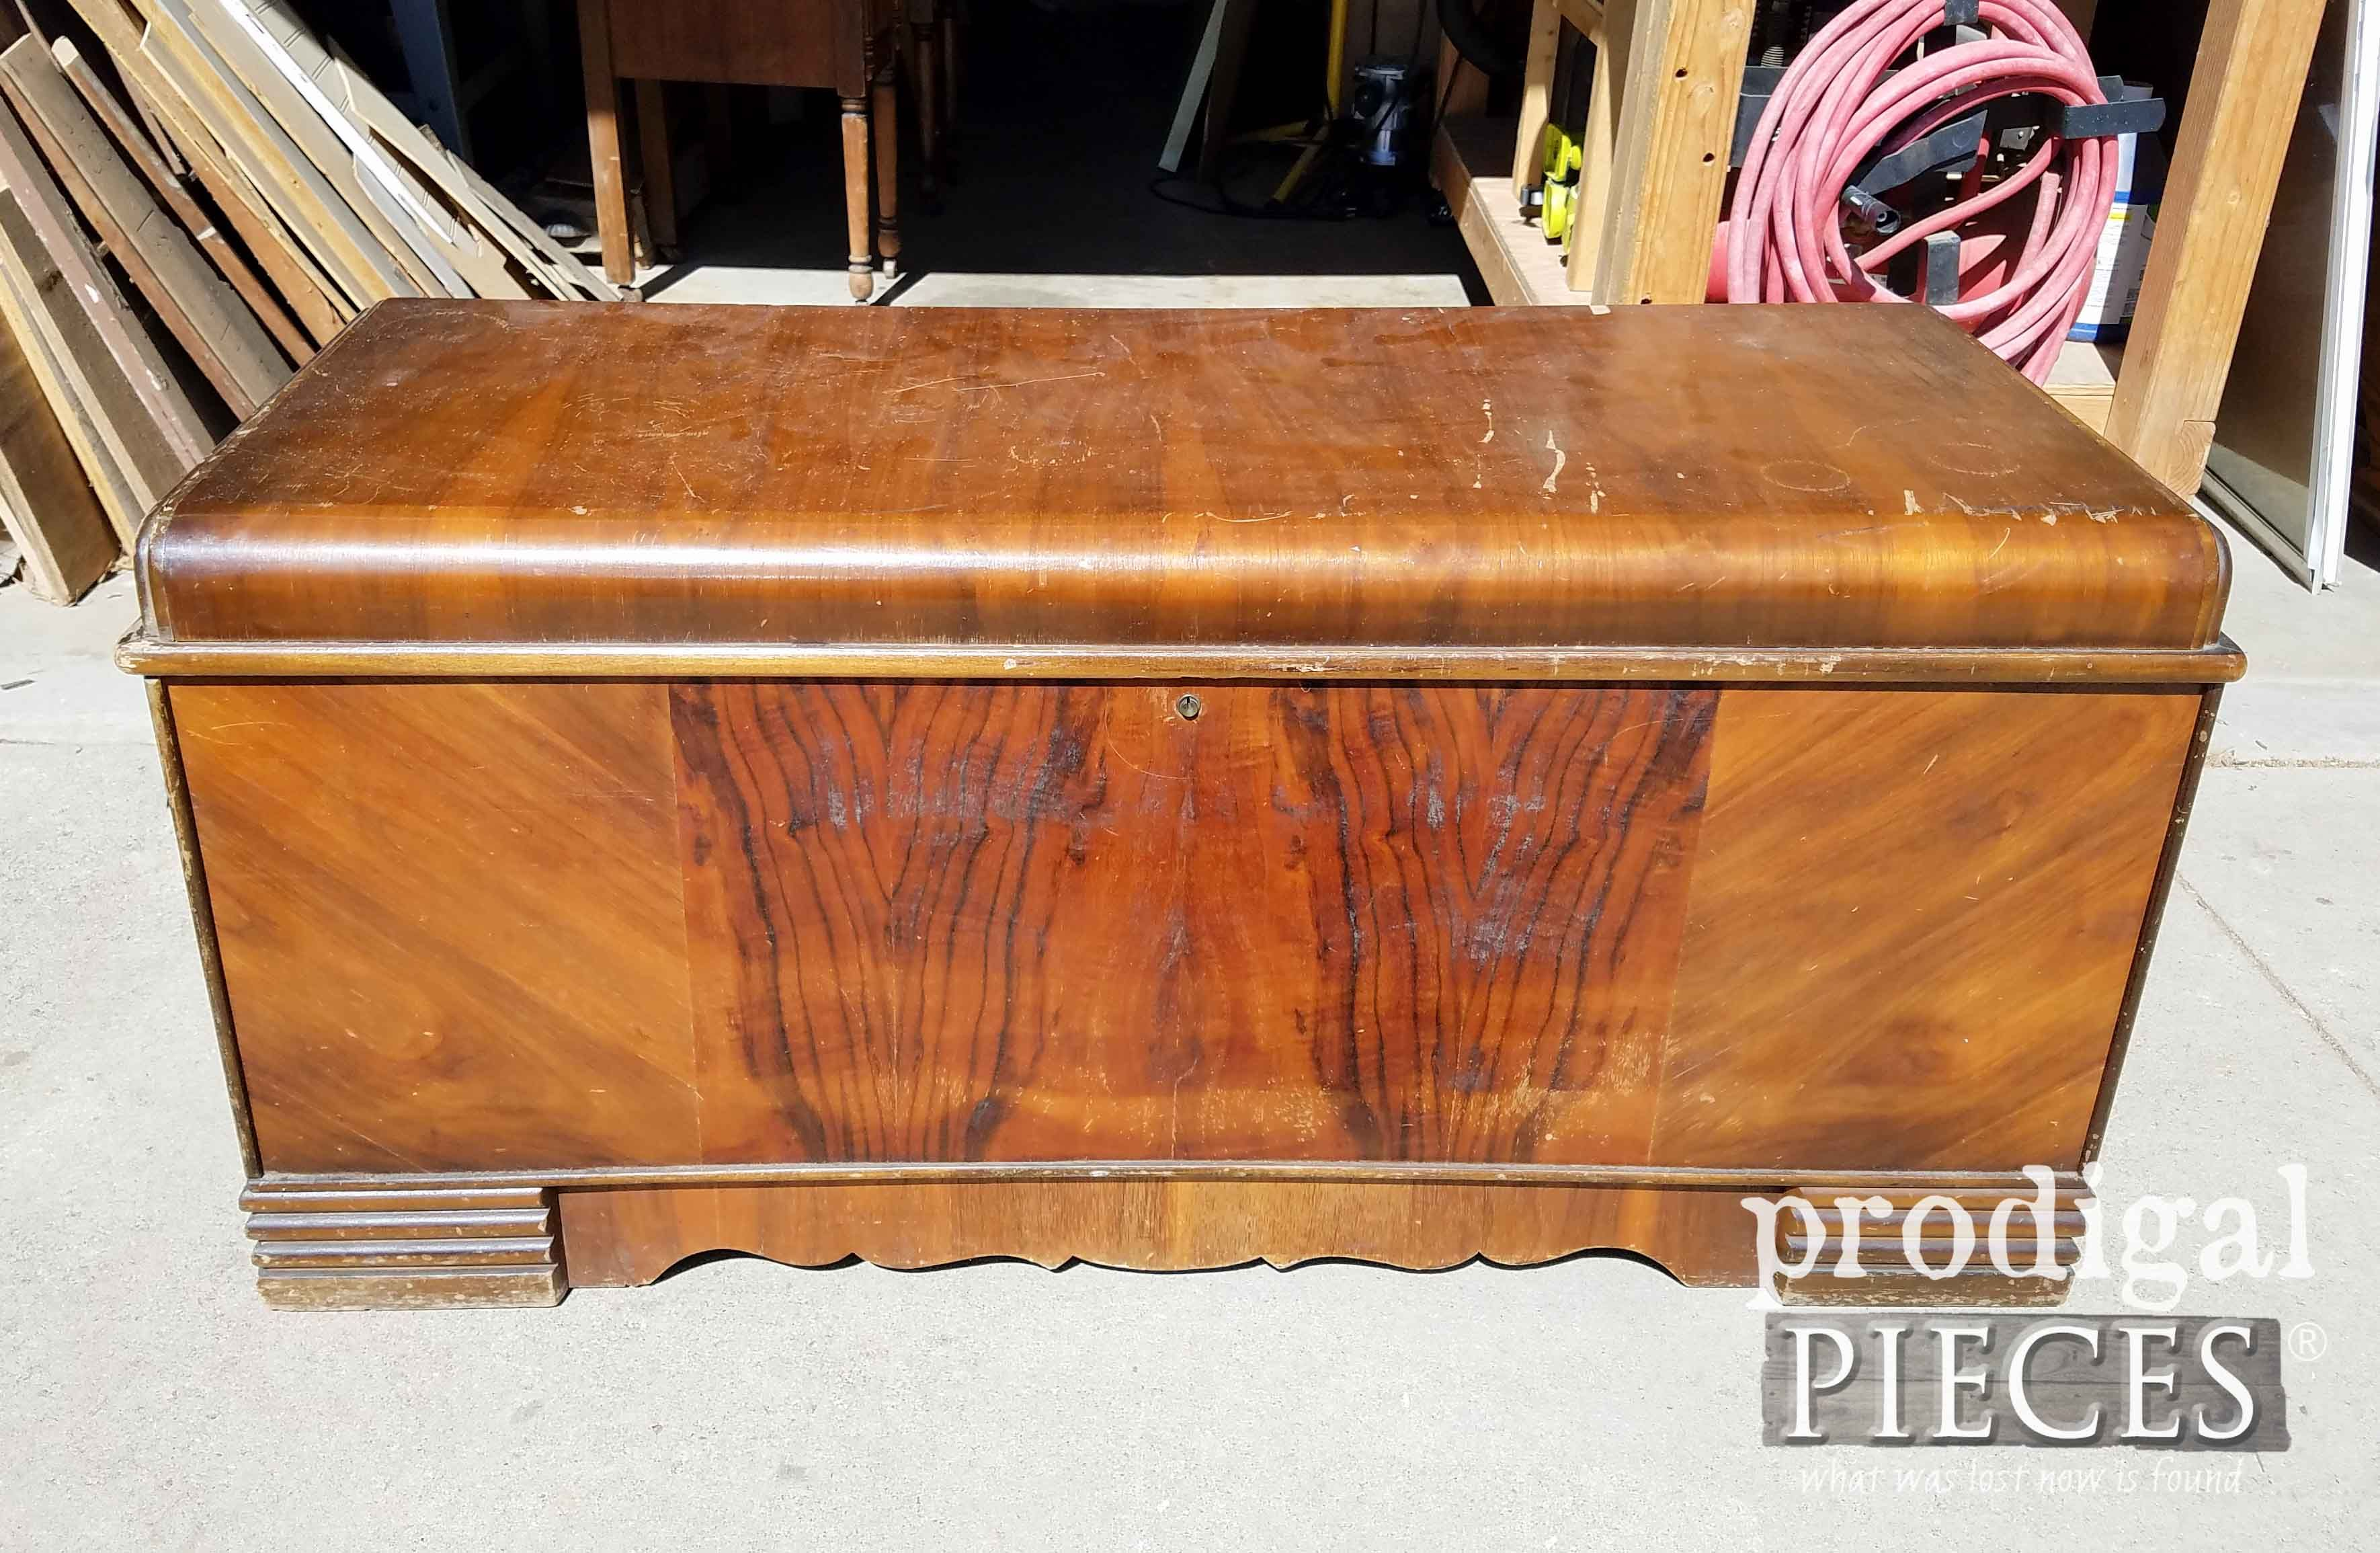 Vintage Waterfall Hope Chest Before Makeover By Prodigal Pieces Prodigalpieces Com Vintage Industrial Furniture Cedar Chest Redo Industrial Furniture